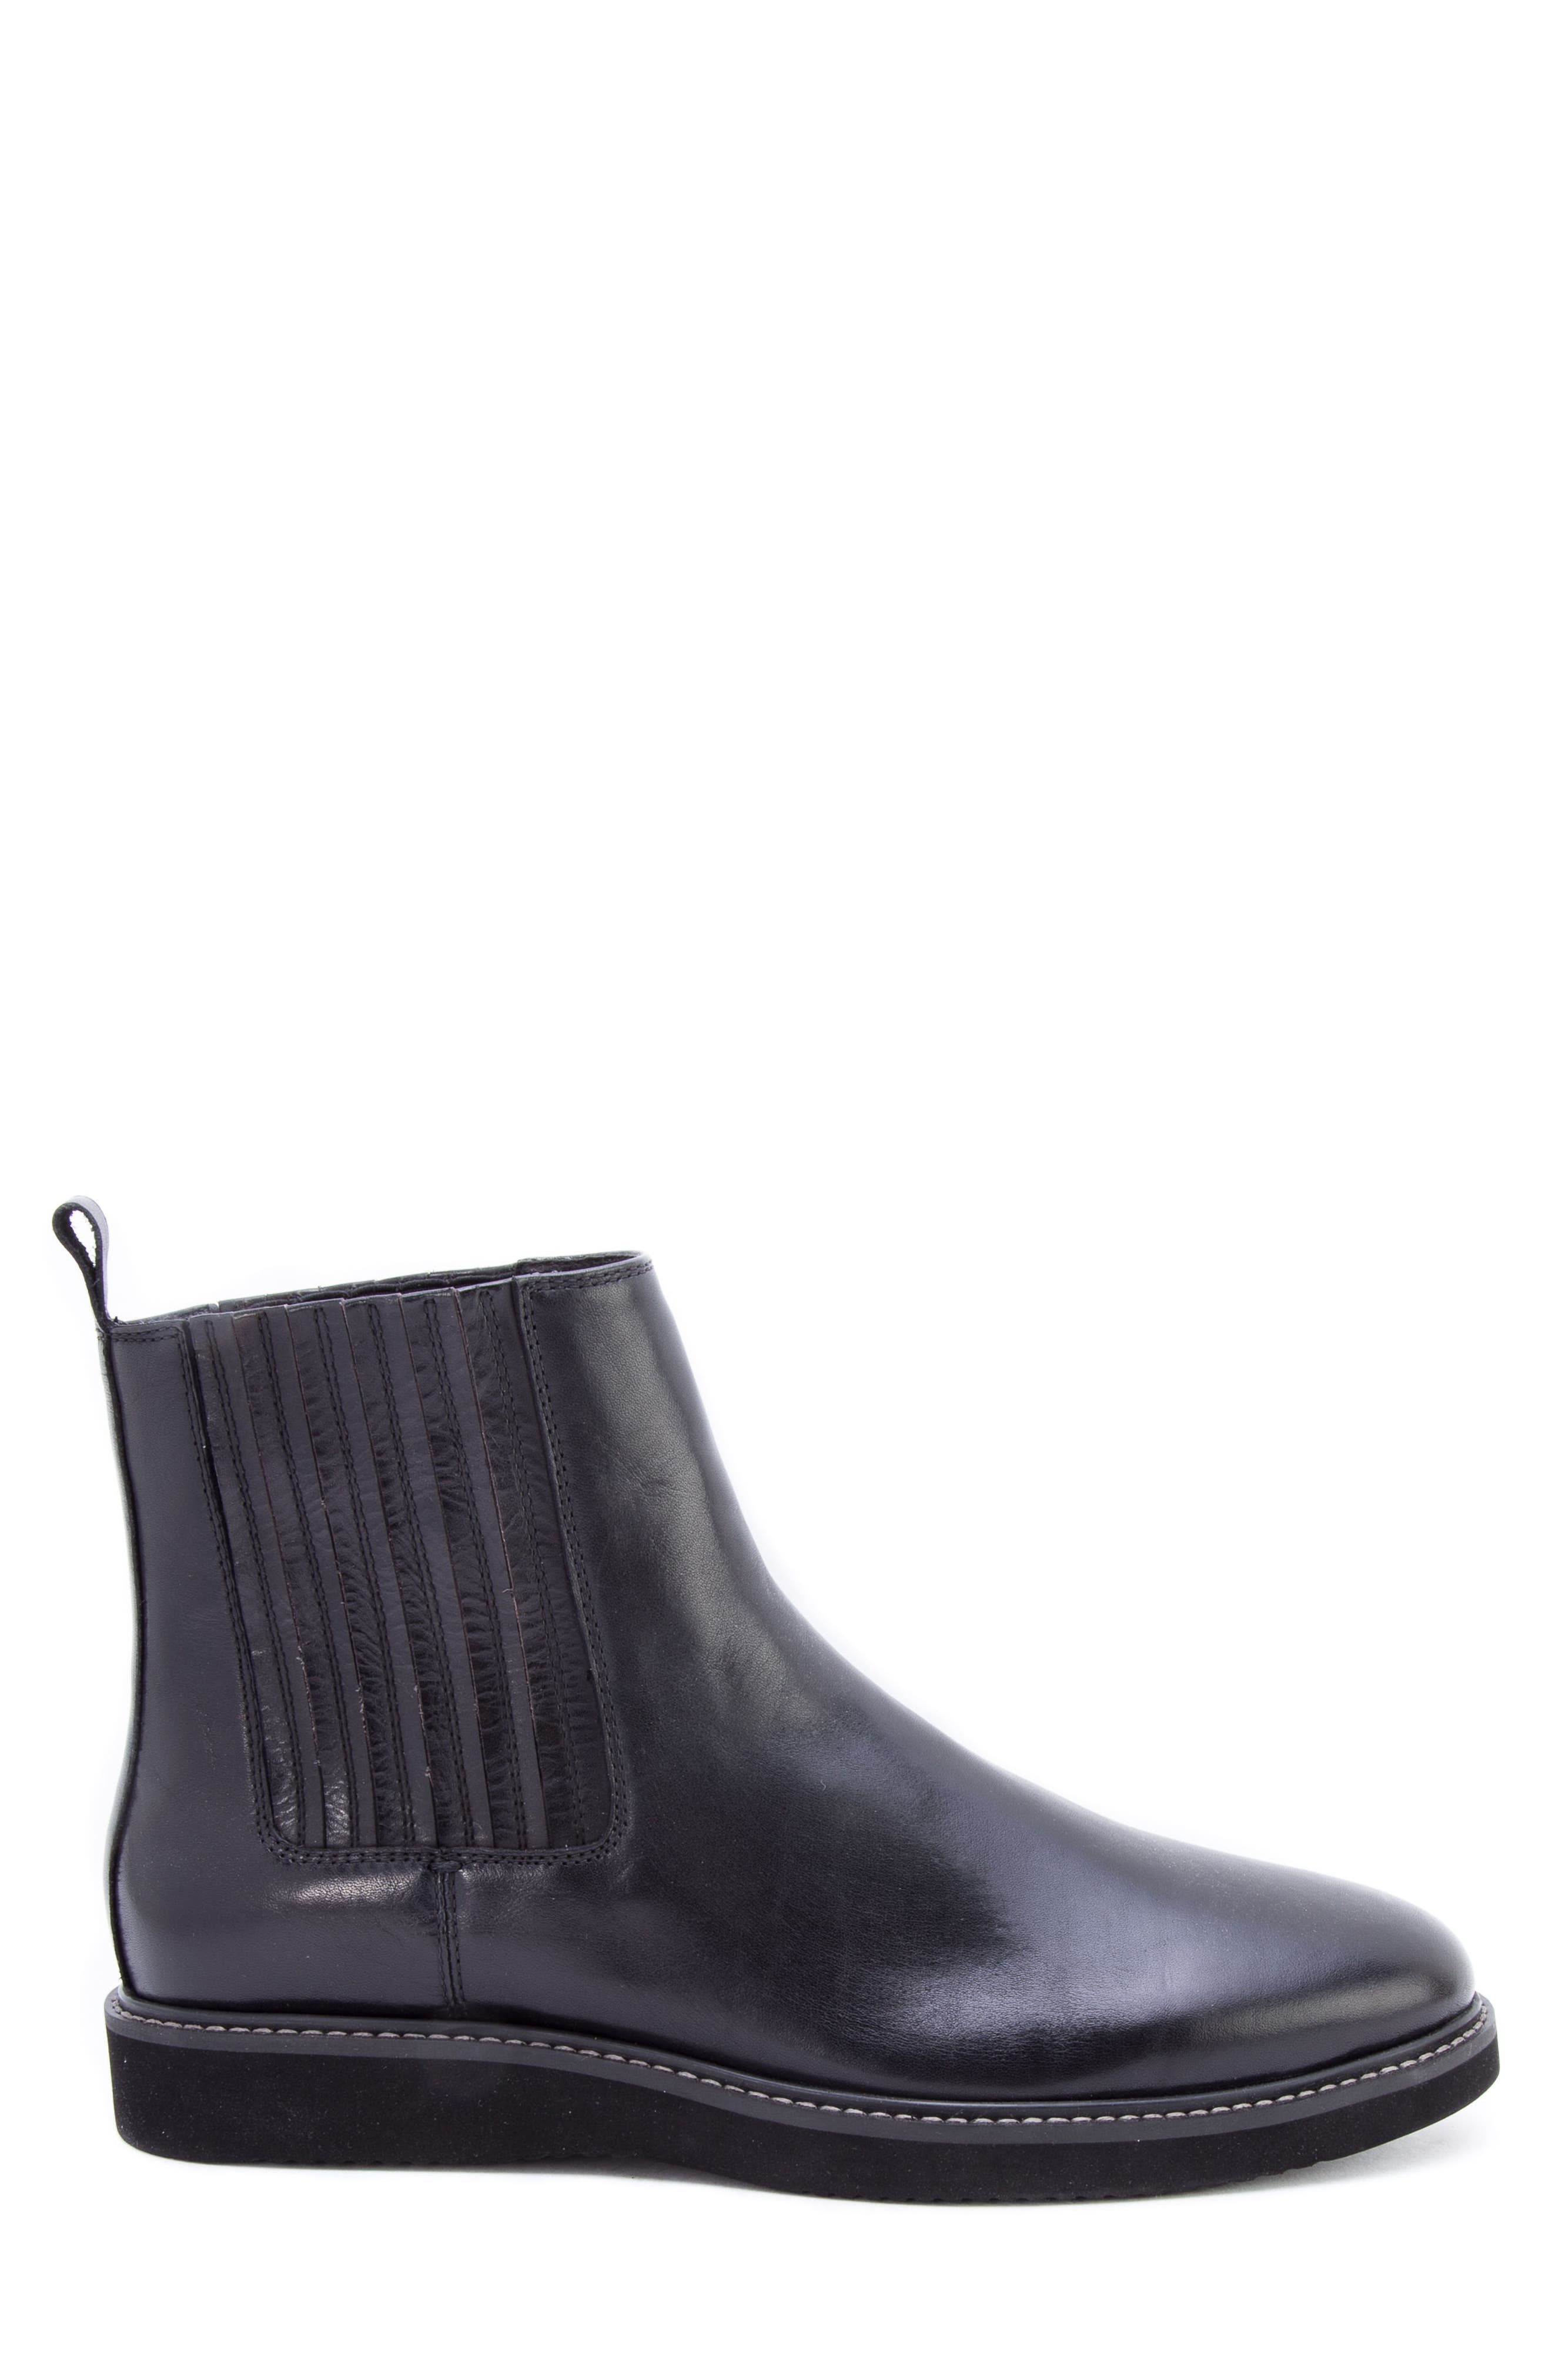 Warlow Chelsea Boot,                             Alternate thumbnail 3, color,                             BLACK LEATHER